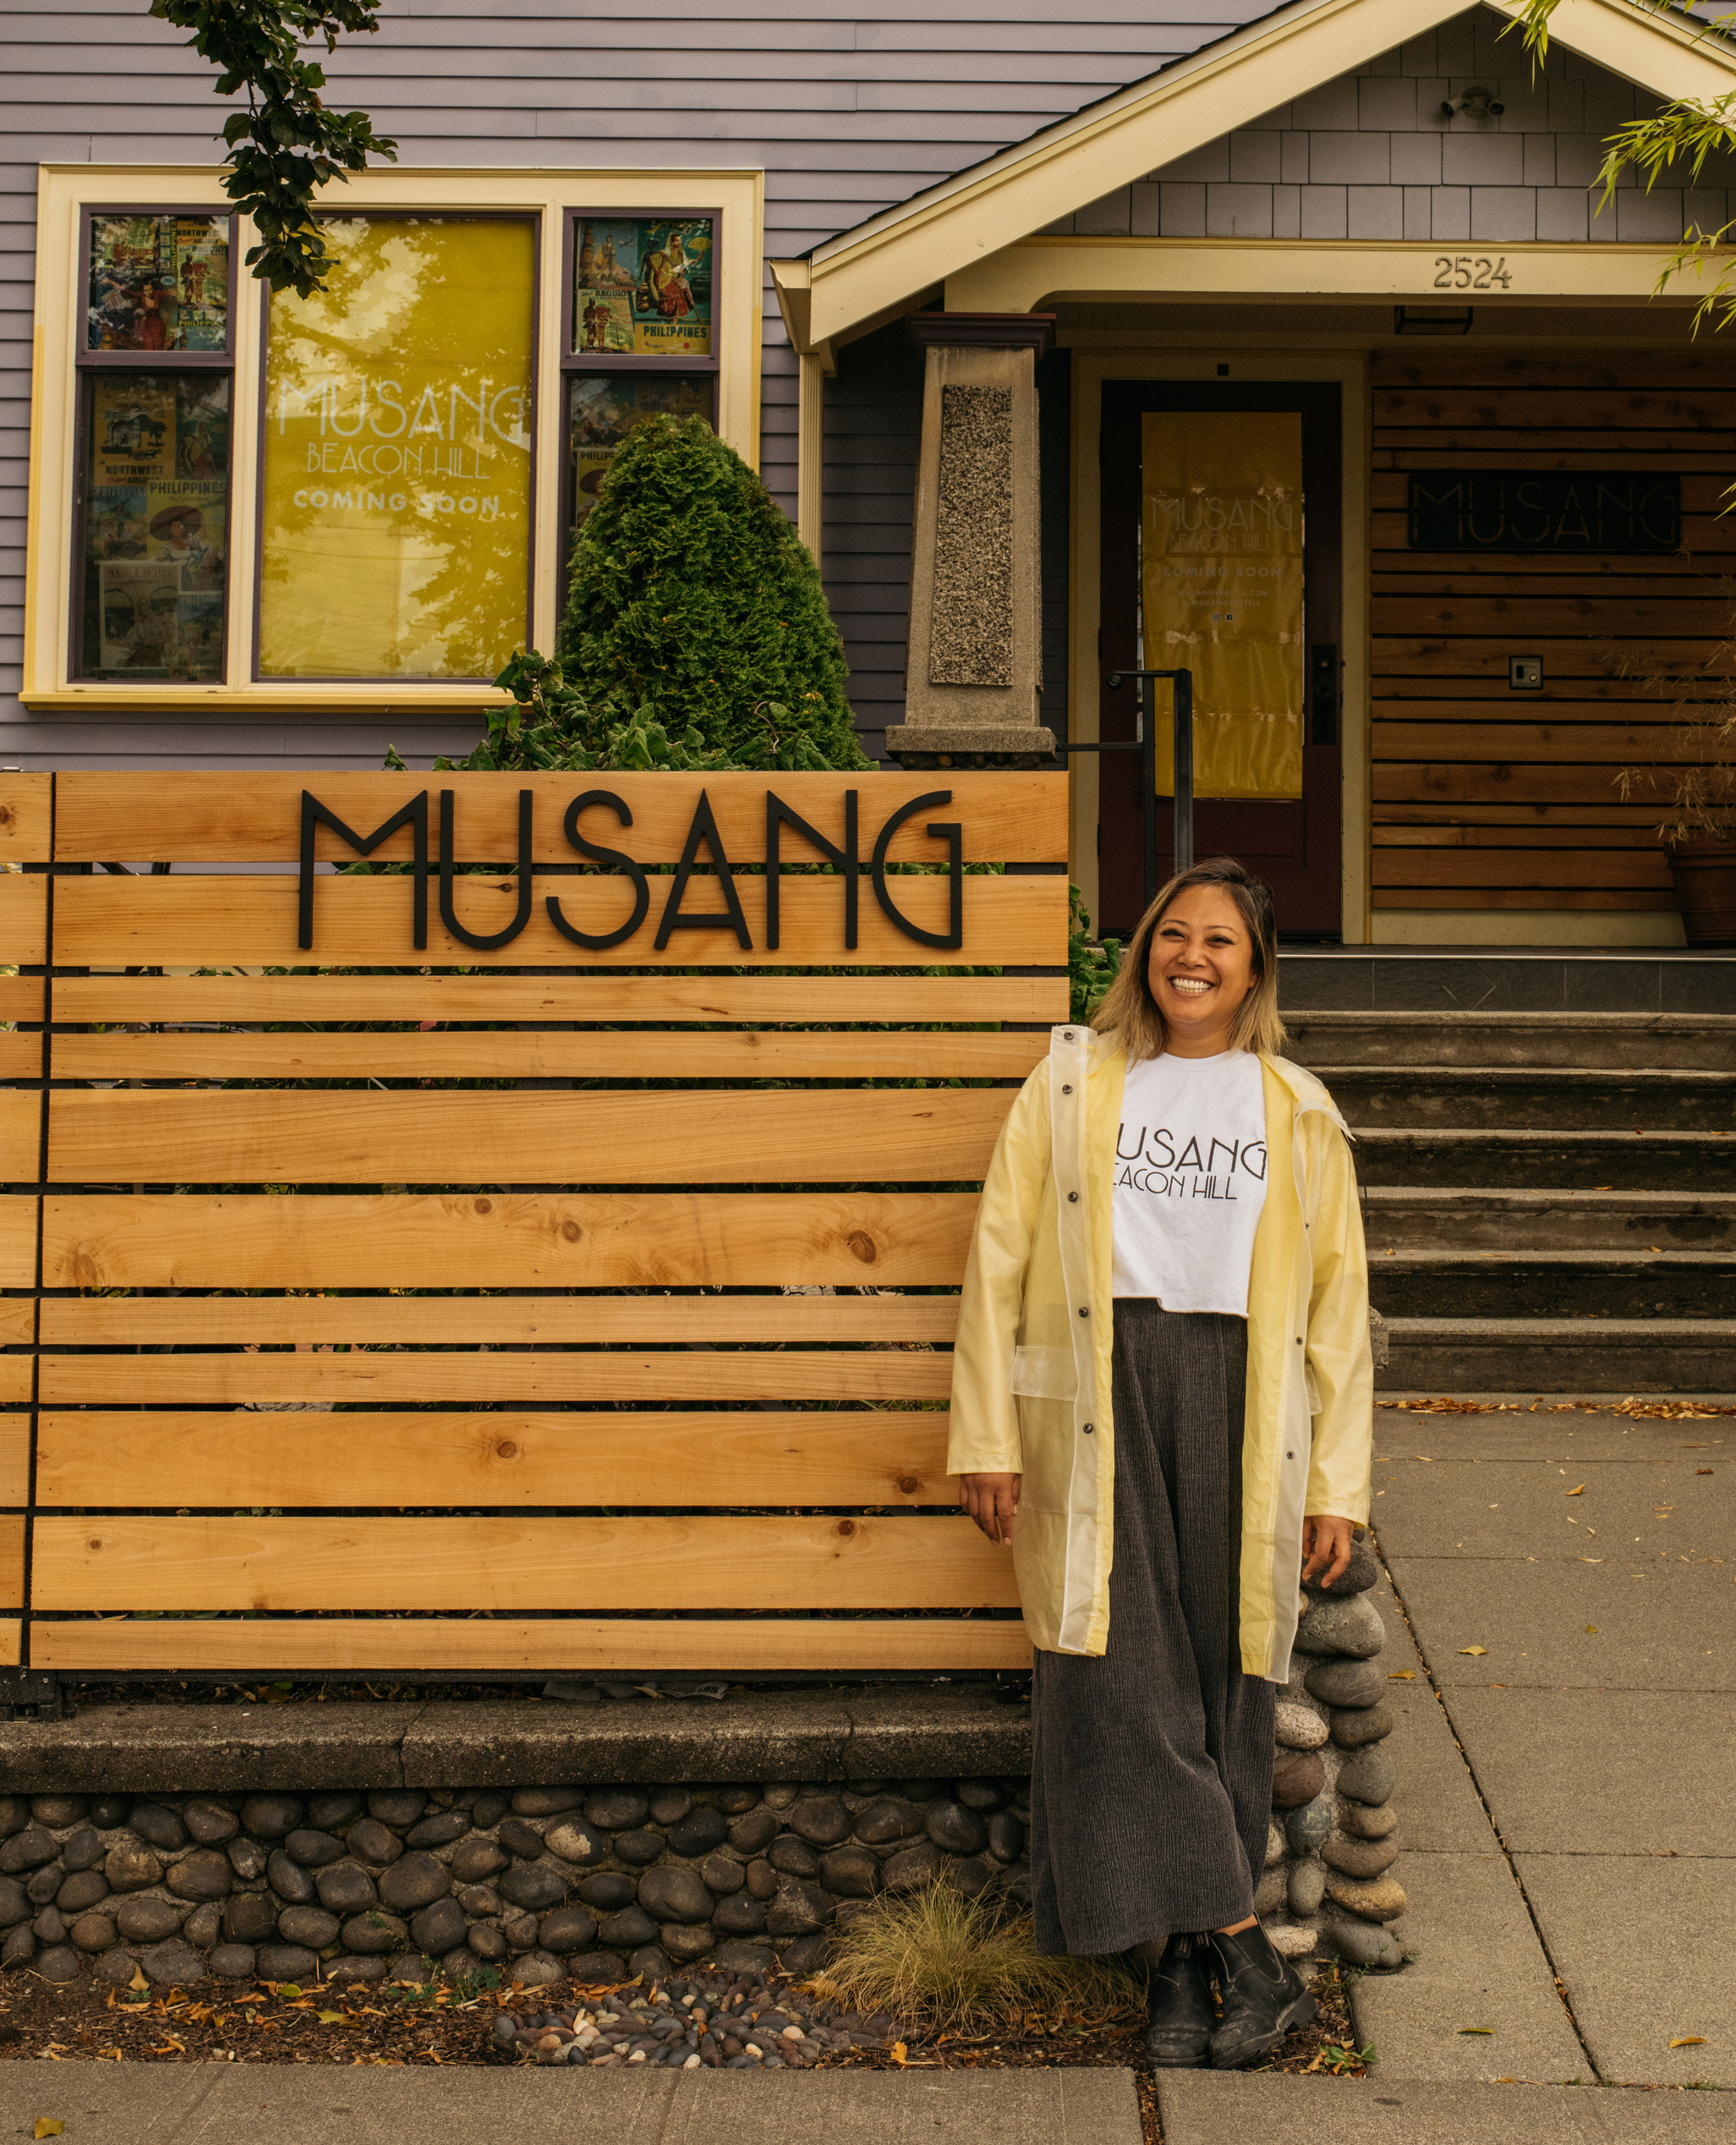 musang seattle, musang, seattle filipino food, melissa miranda